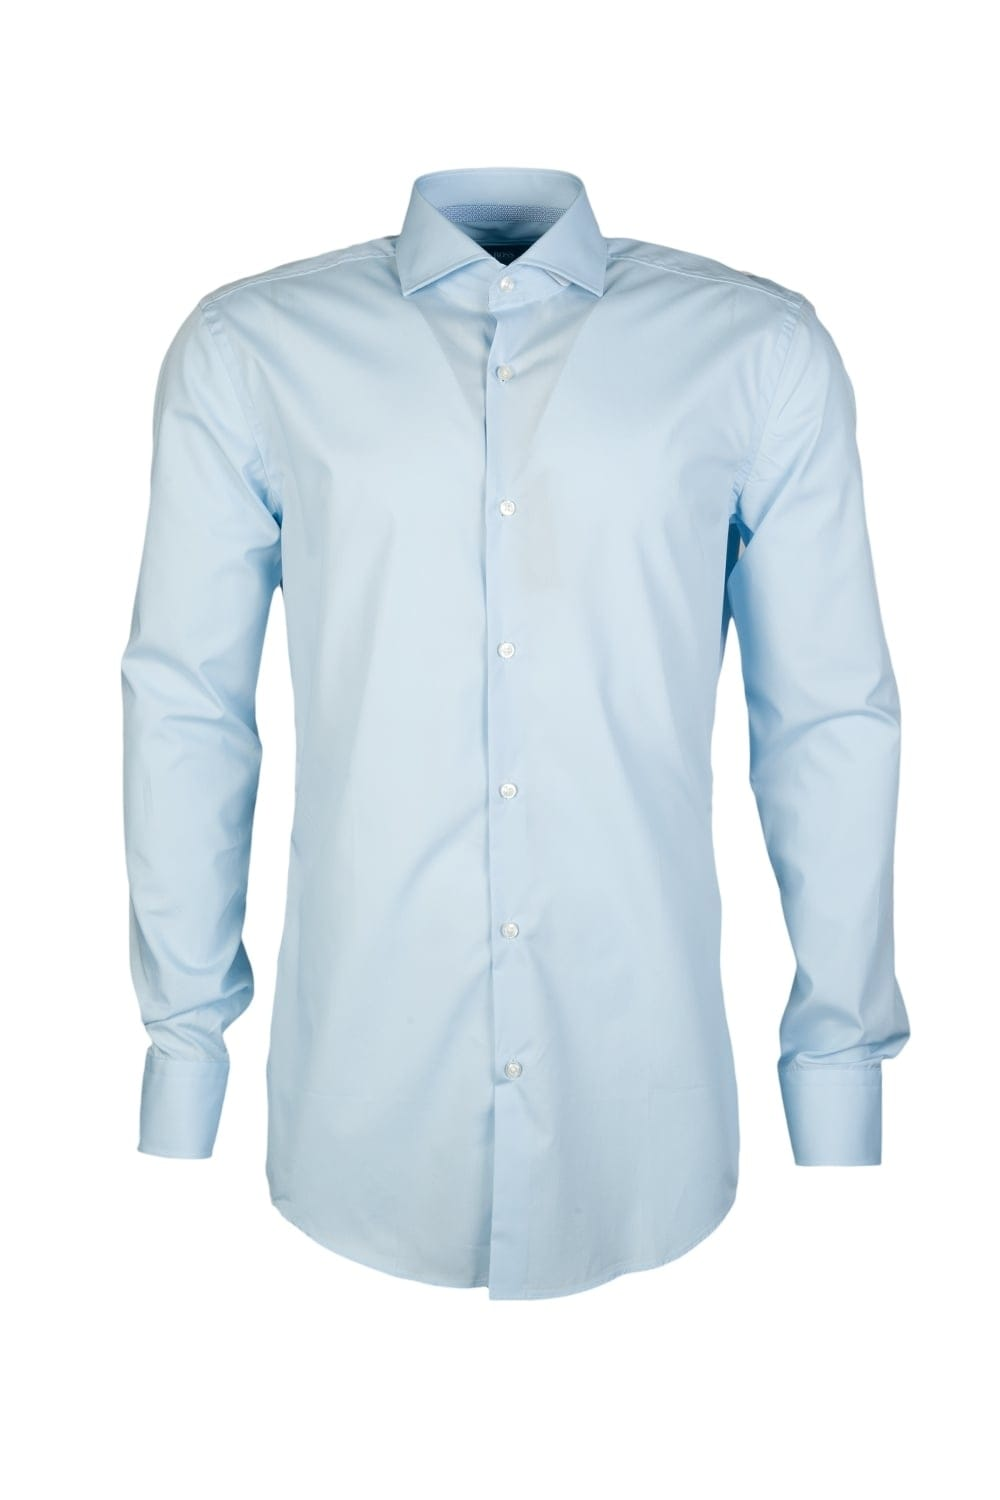 Hugo Boss Shirt Slim Fit Jery 50315414 Clothing From